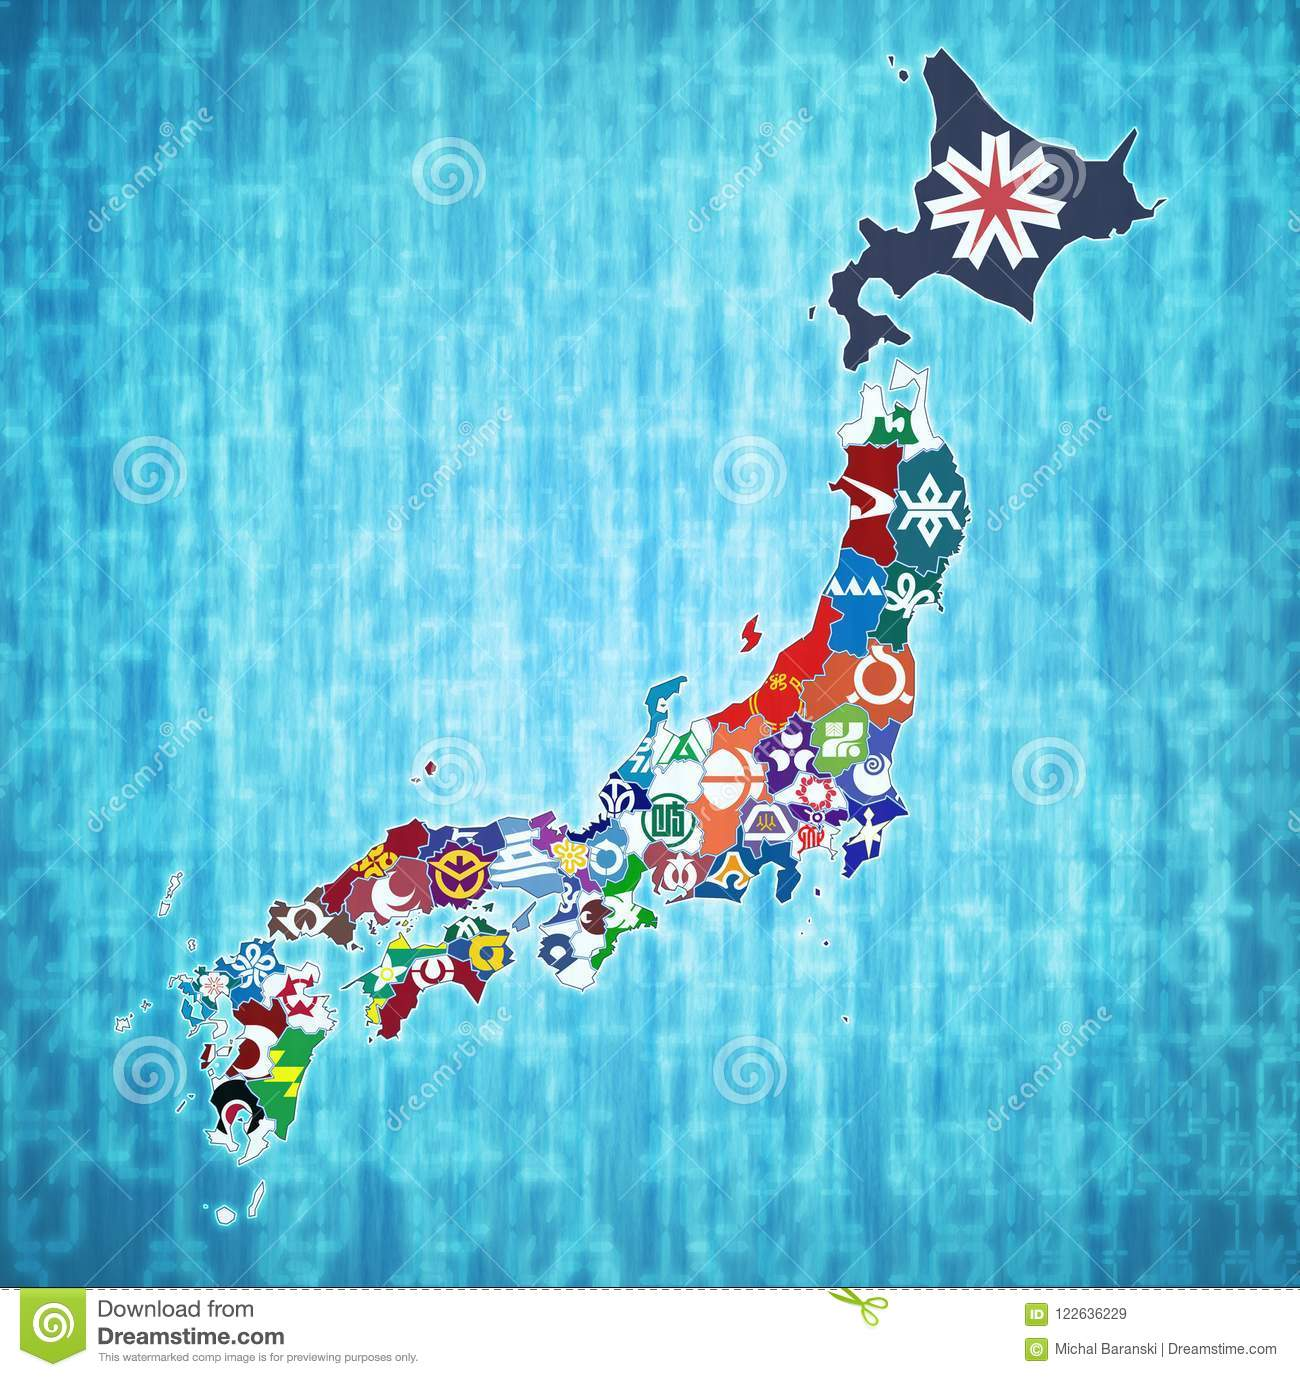 Map Of Japan With Prefectures.Prefectures Of Japan On Administration Map Stock Illustration